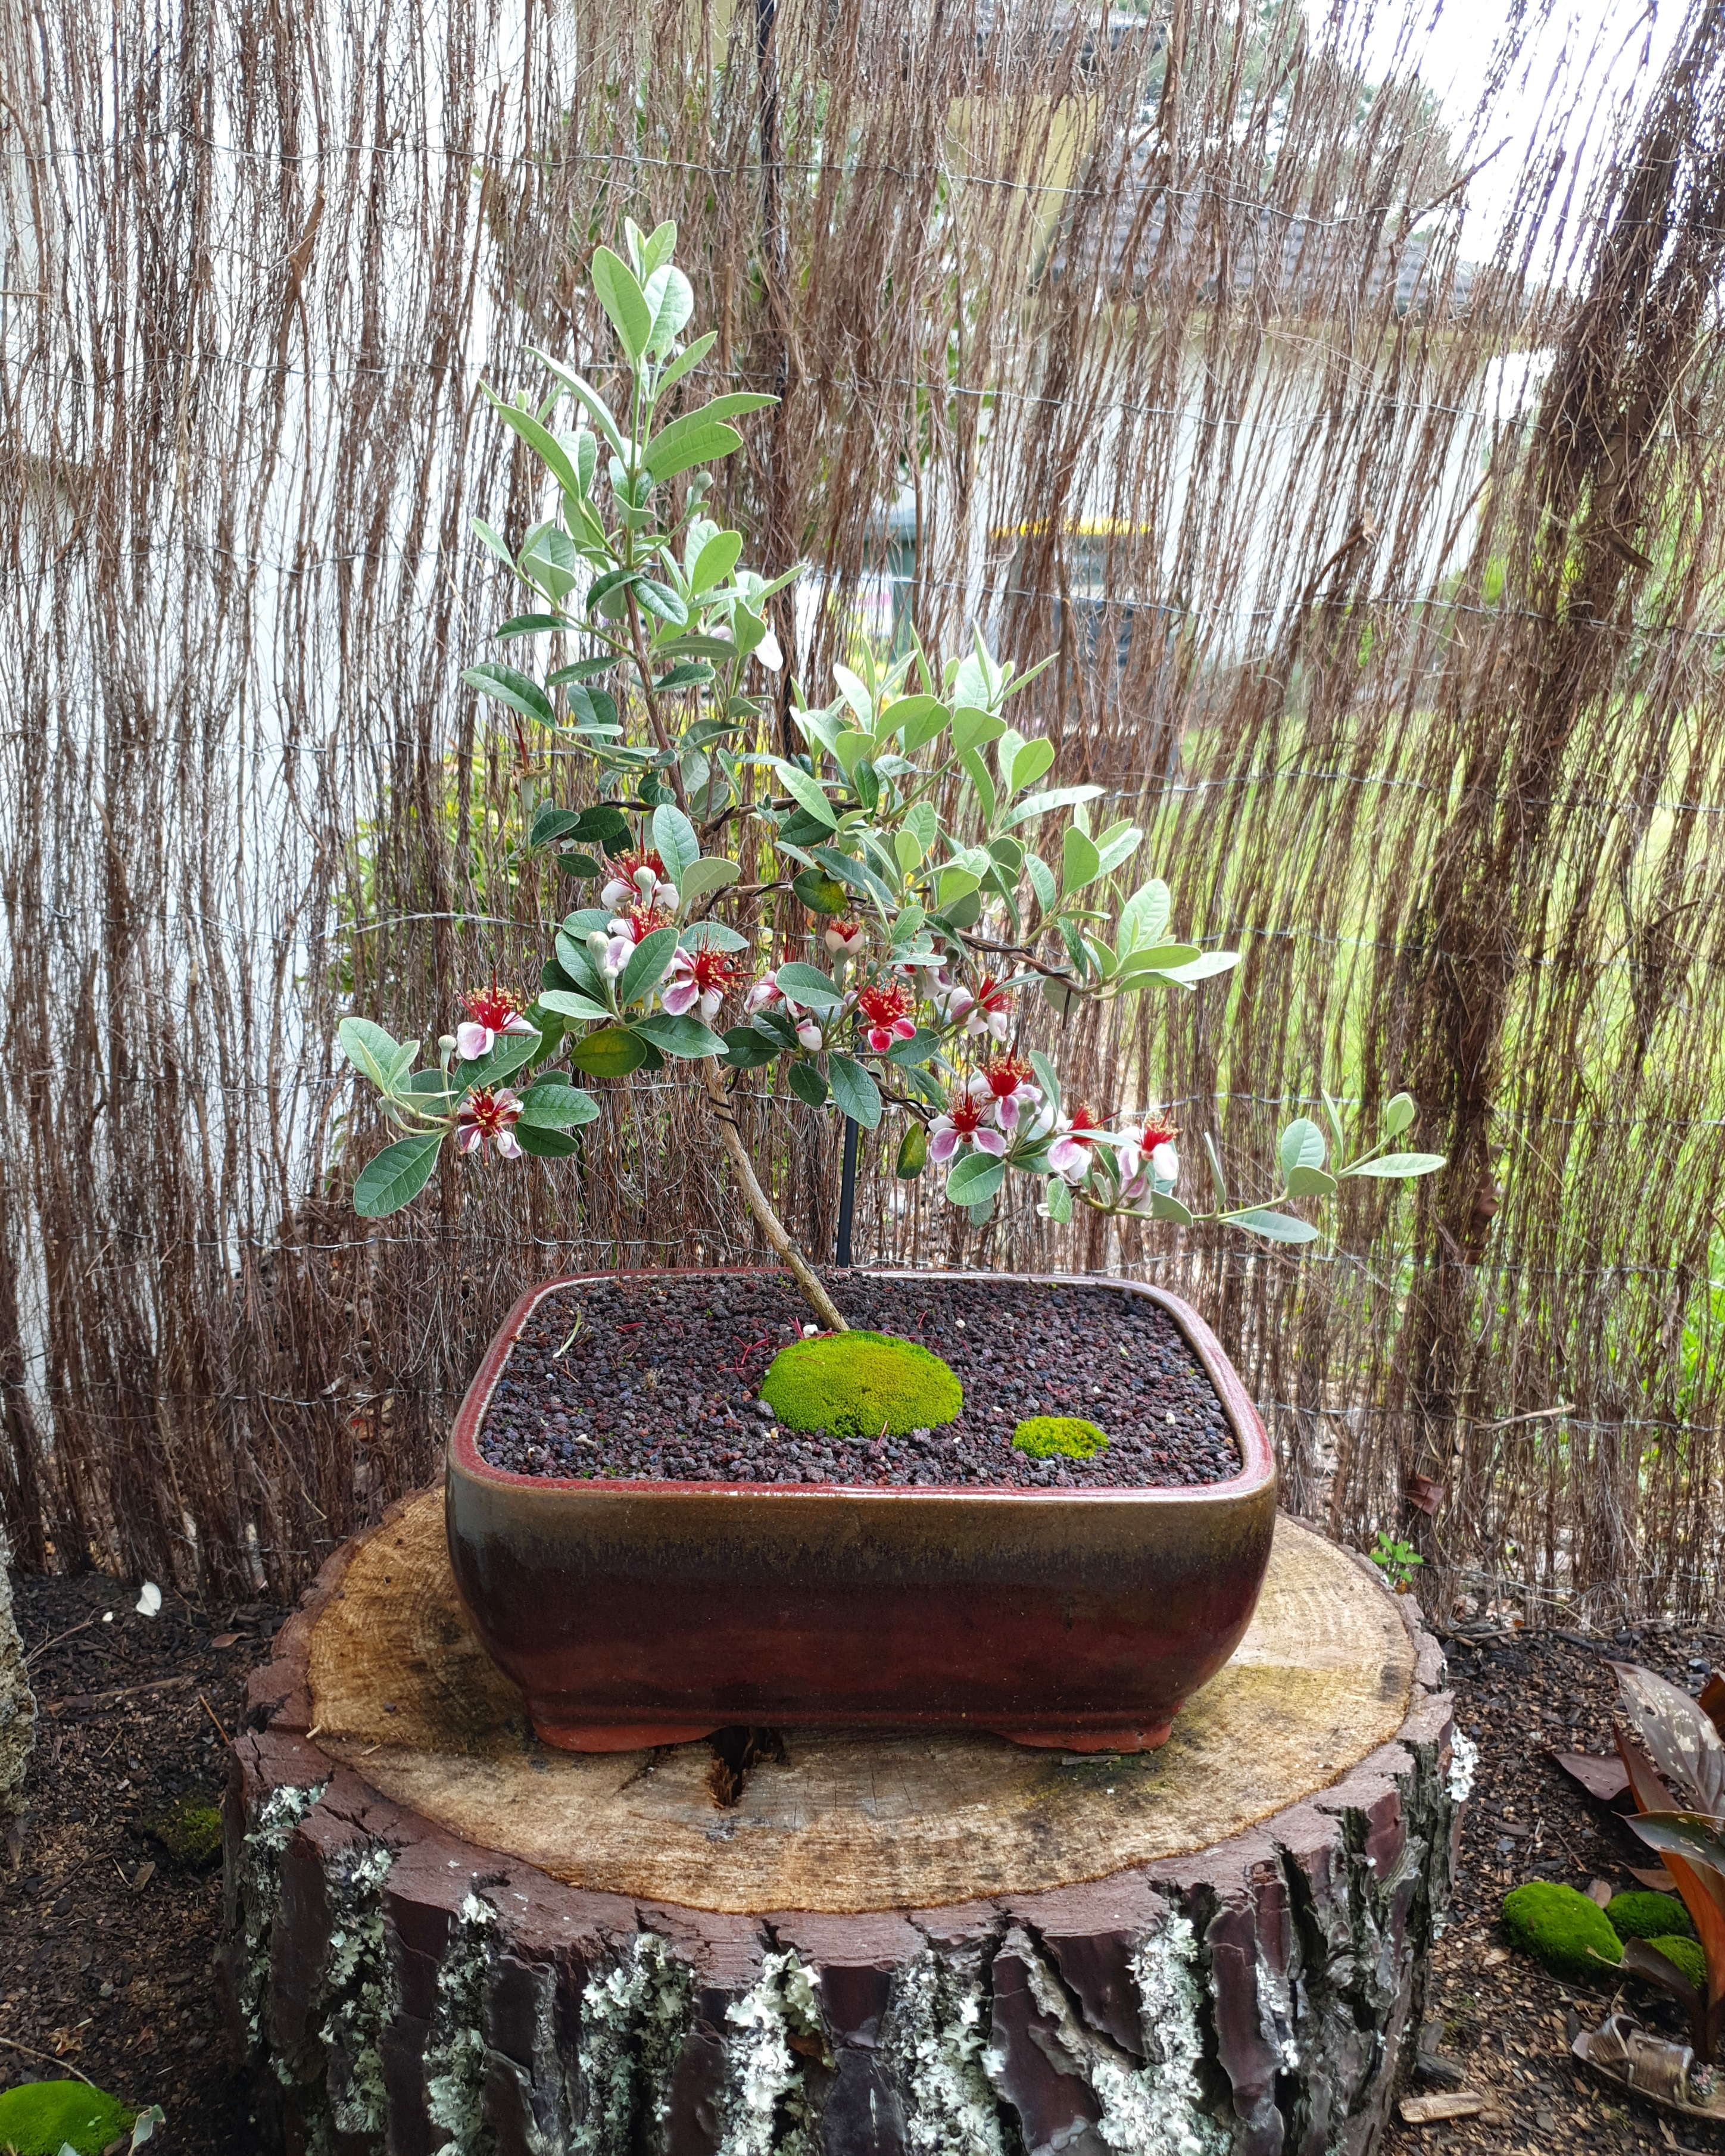 Feijoa bonsai tree for sale